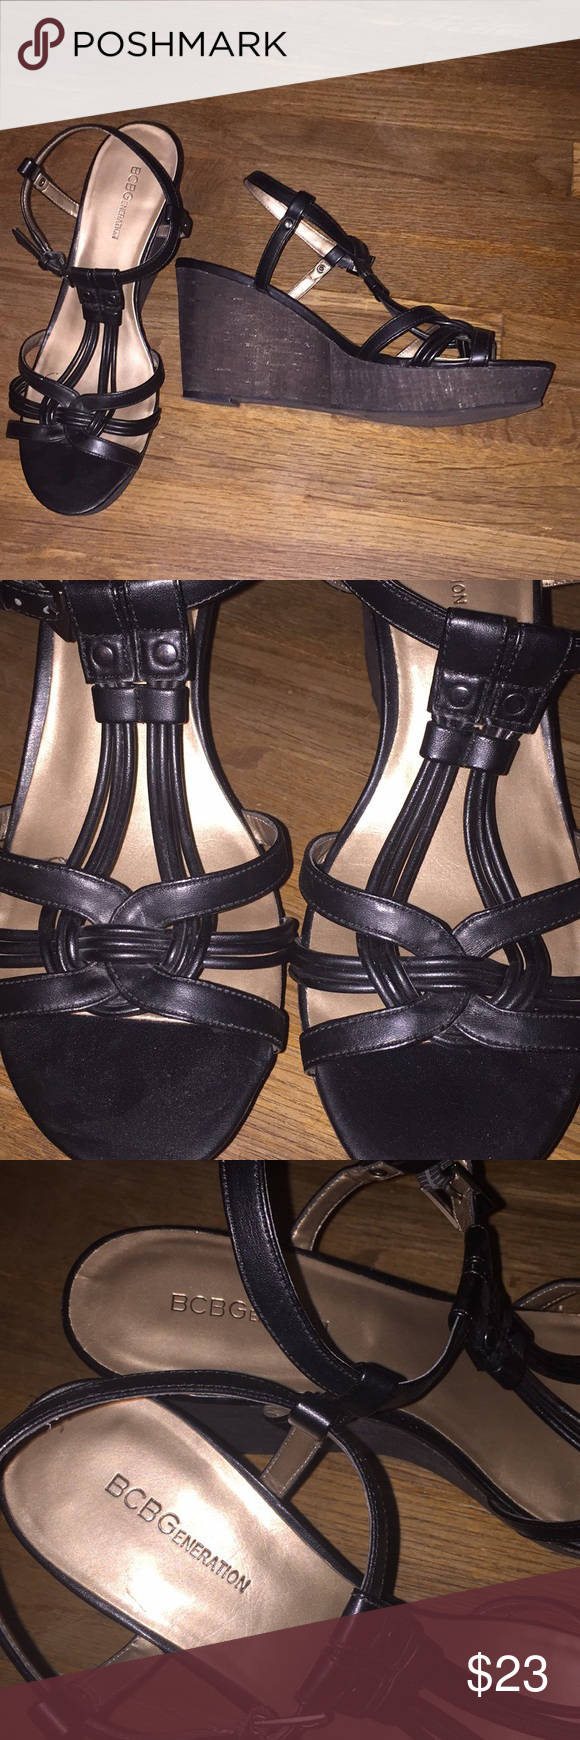 "822d23f785f BCBG Generation Black Strap Open Toe Wedge BCBG Generation Strappy Open Tie  Wedge Worn twice 3.5"" heel BCBGeneration Shoes Wedges"